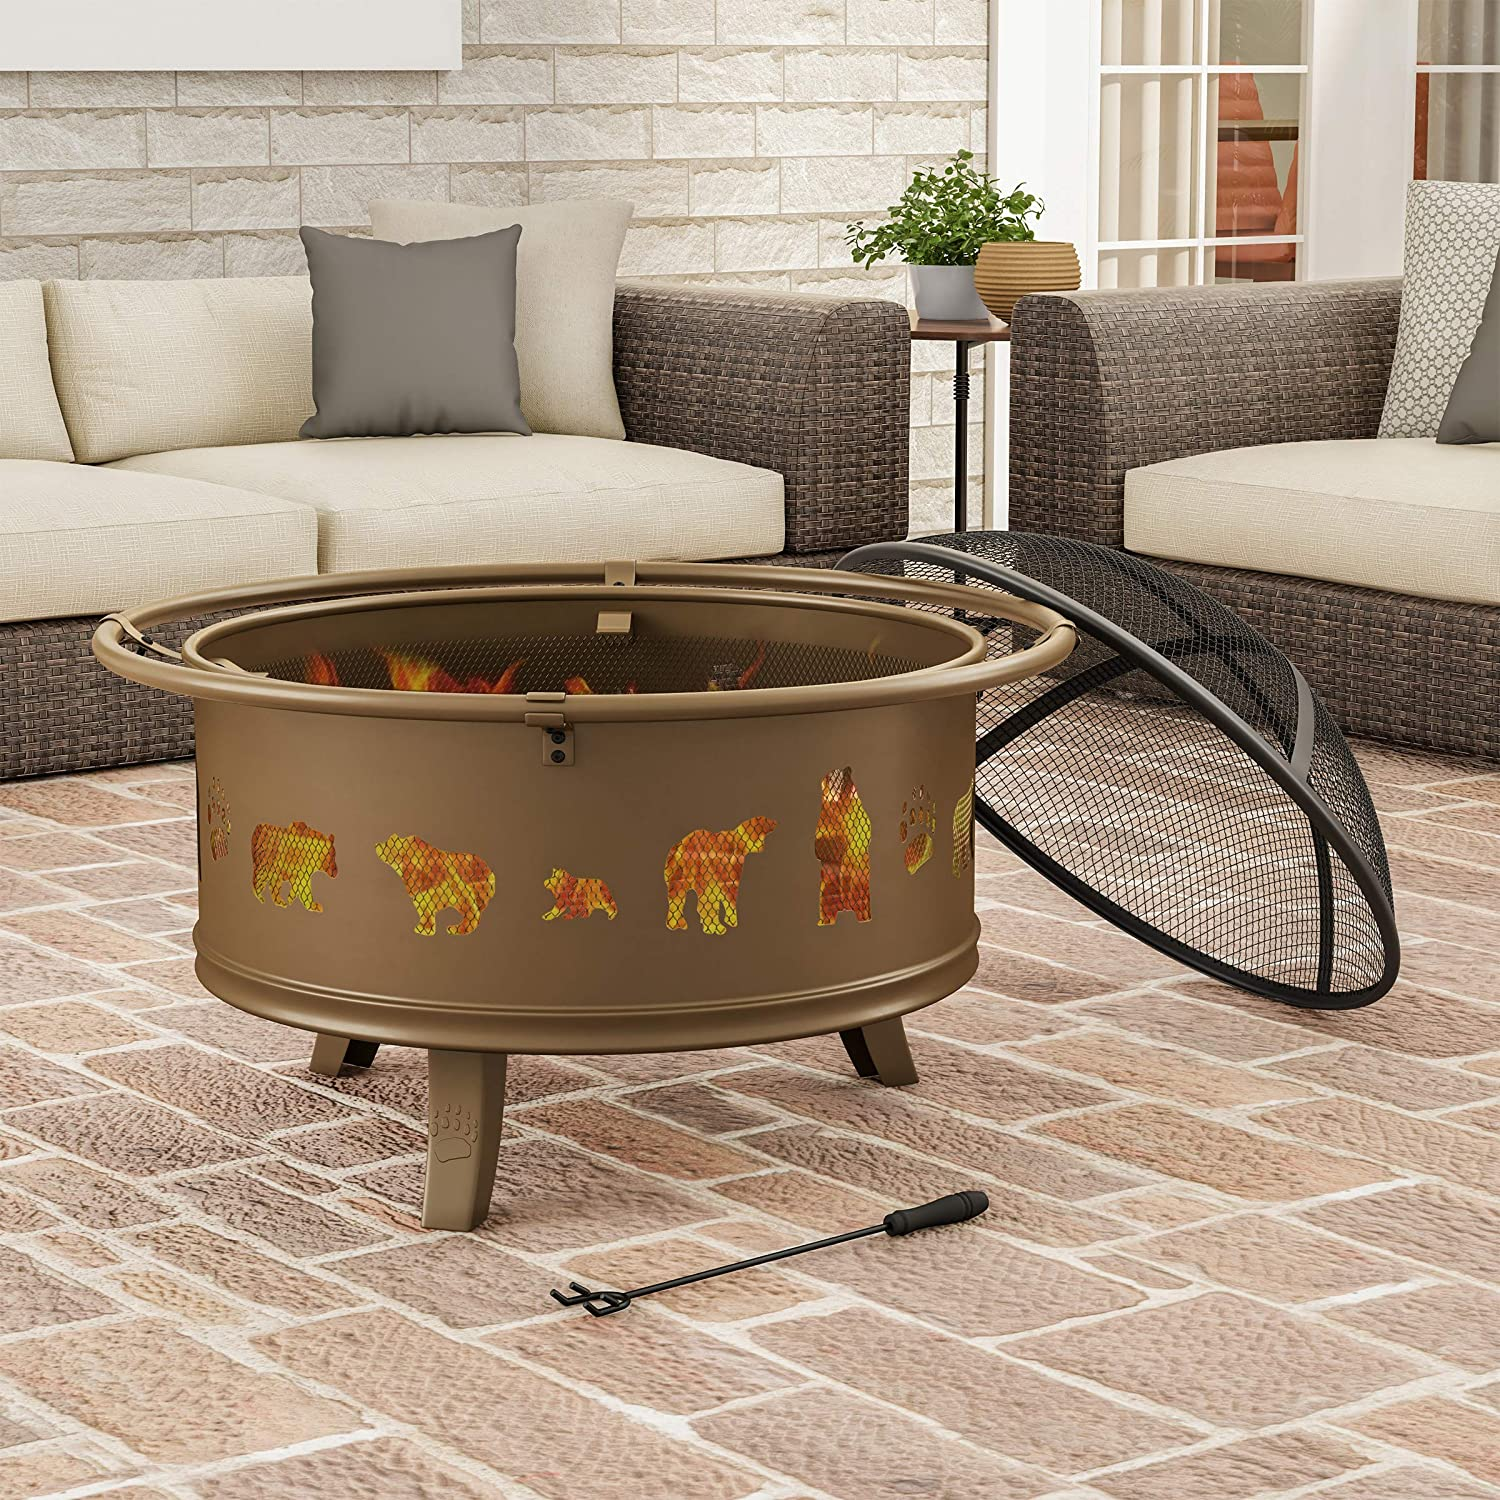 "Pure Garden 50-LG1202 Round Large Steel Bowl with Bear Cutouts, Mesh Spark Screen, Log Poker & Storage Cover 32"" Outdoor Deep Fire Pit, Brown"